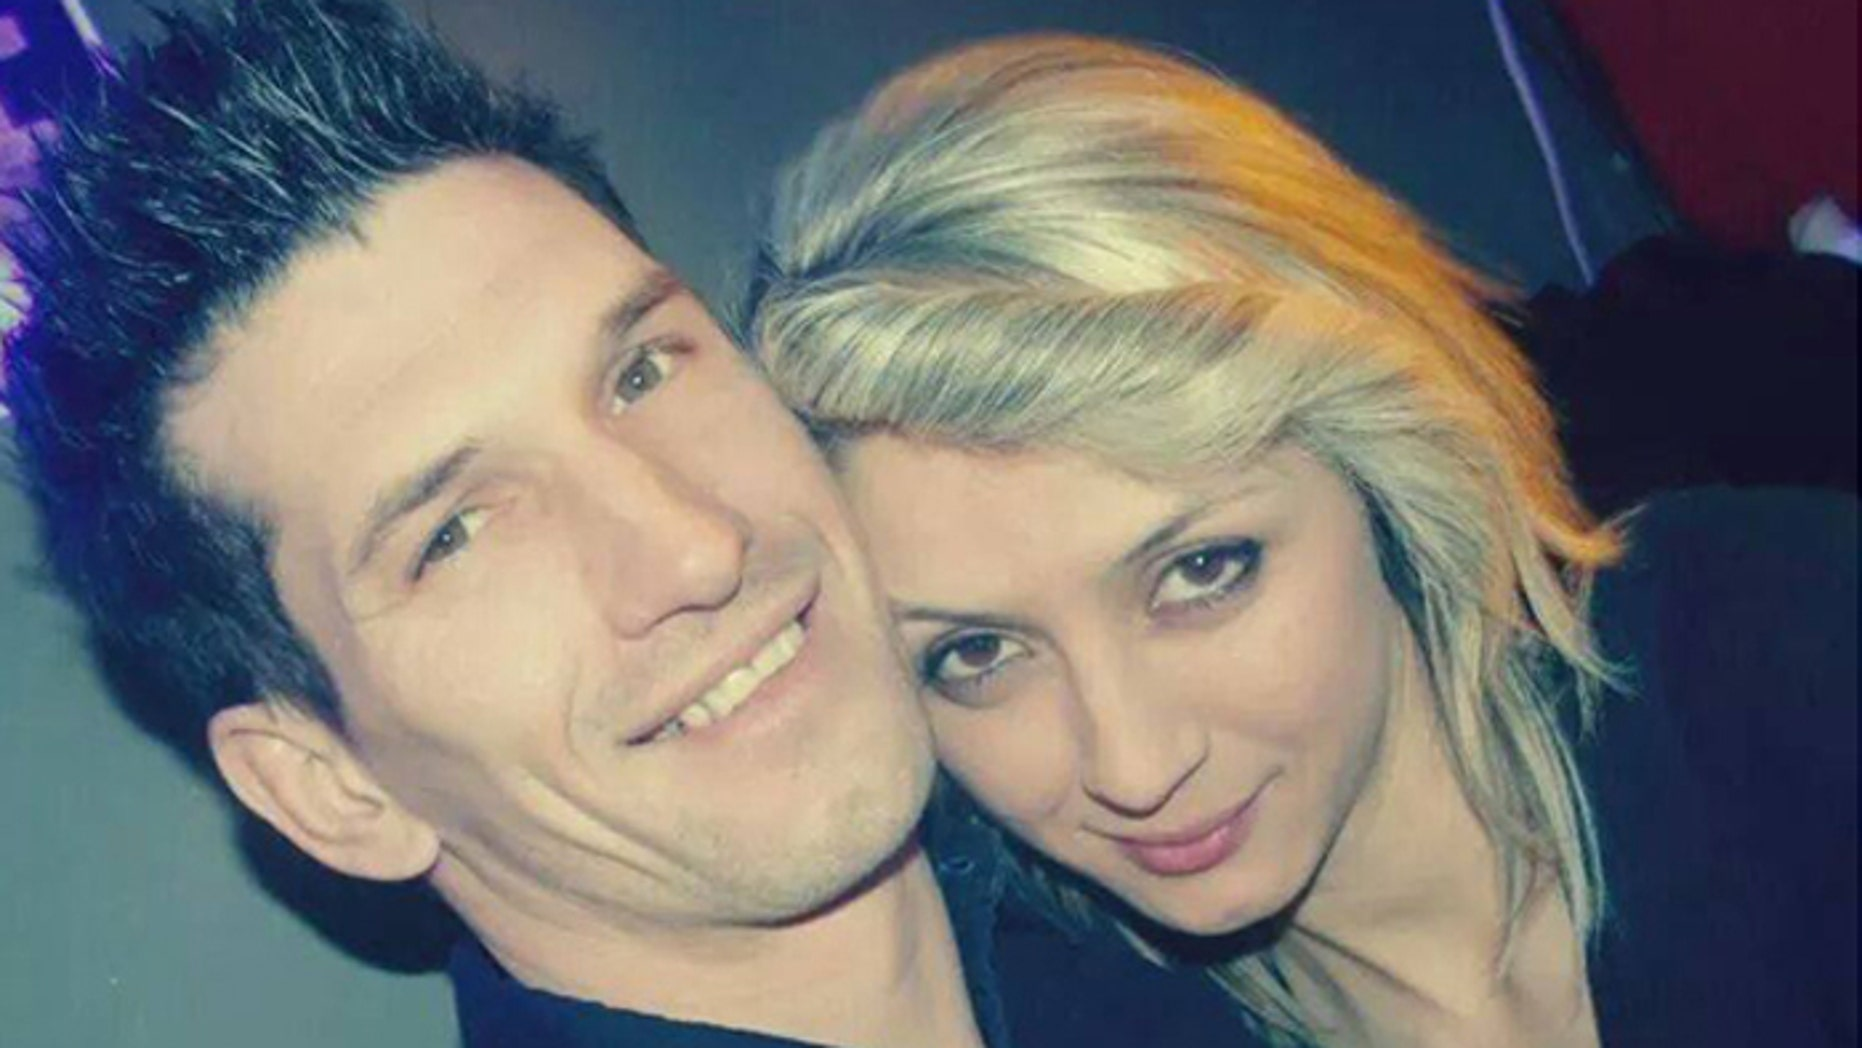 Zemir Begic died protecting fiancee Arijana Mujkanovic, when hammer-wielding teens allegedly attacked them on a city street. (Facebook)